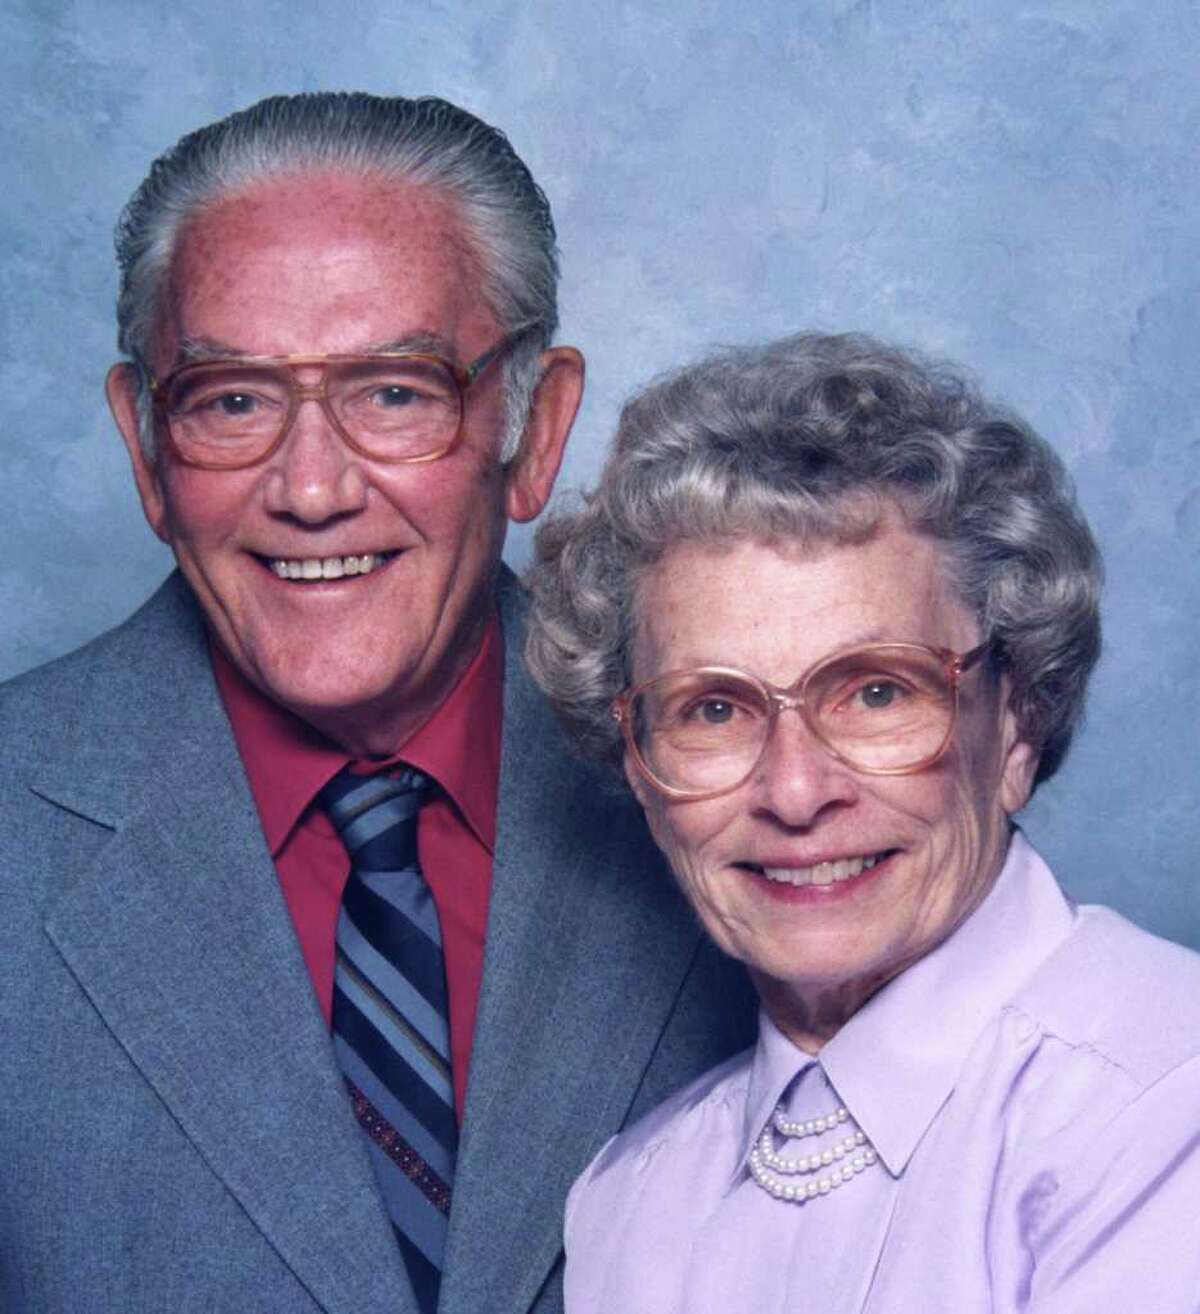 """Gordon and Margie Brandon. Gordon A. Brandon Sr., and his wife, Margaret """"Margie"""" Brandon, met as kids in Sunday school and were married for 65 years. They lived most of that time in their home on Bertha Street, where they both died, side by side, two days apart this week. He was 88 and she was 90. They were ordinary people with an extraordinary love story."""